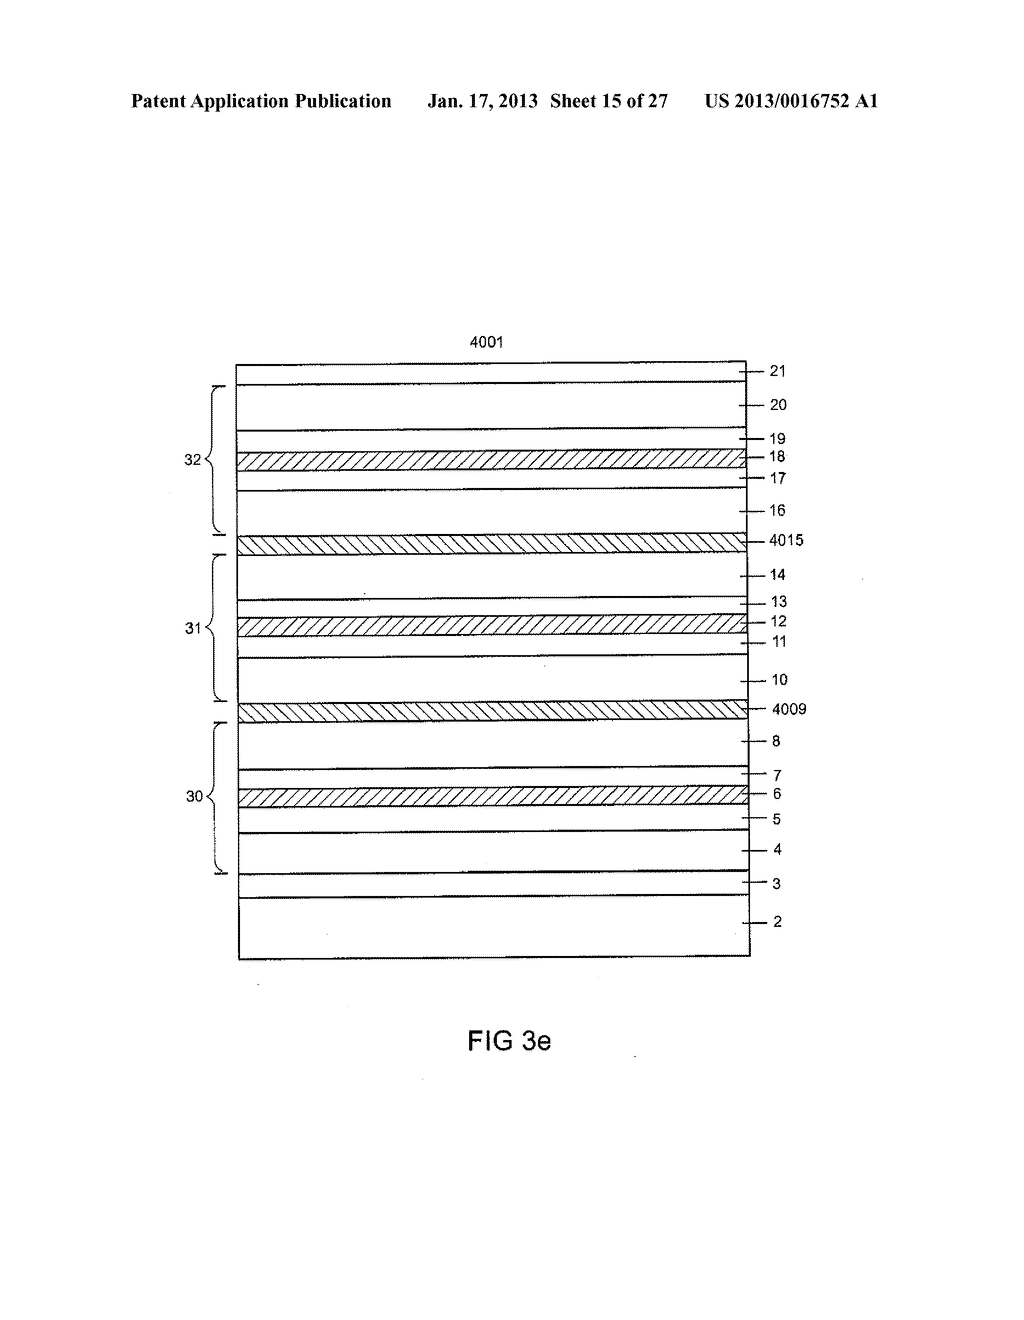 Laser Diode Assembly and Method for Producing a Laser Diode AssemblyAANM Lell; AlfredAACI Maxhutte-HaidhofAACO DEAAGP Lell; Alfred Maxhutte-Haidhof DEAANM Straussburg; MartinAACI DonaustaufAACO DEAAGP Straussburg; Martin Donaustauf DE - diagram, schematic, and image 16